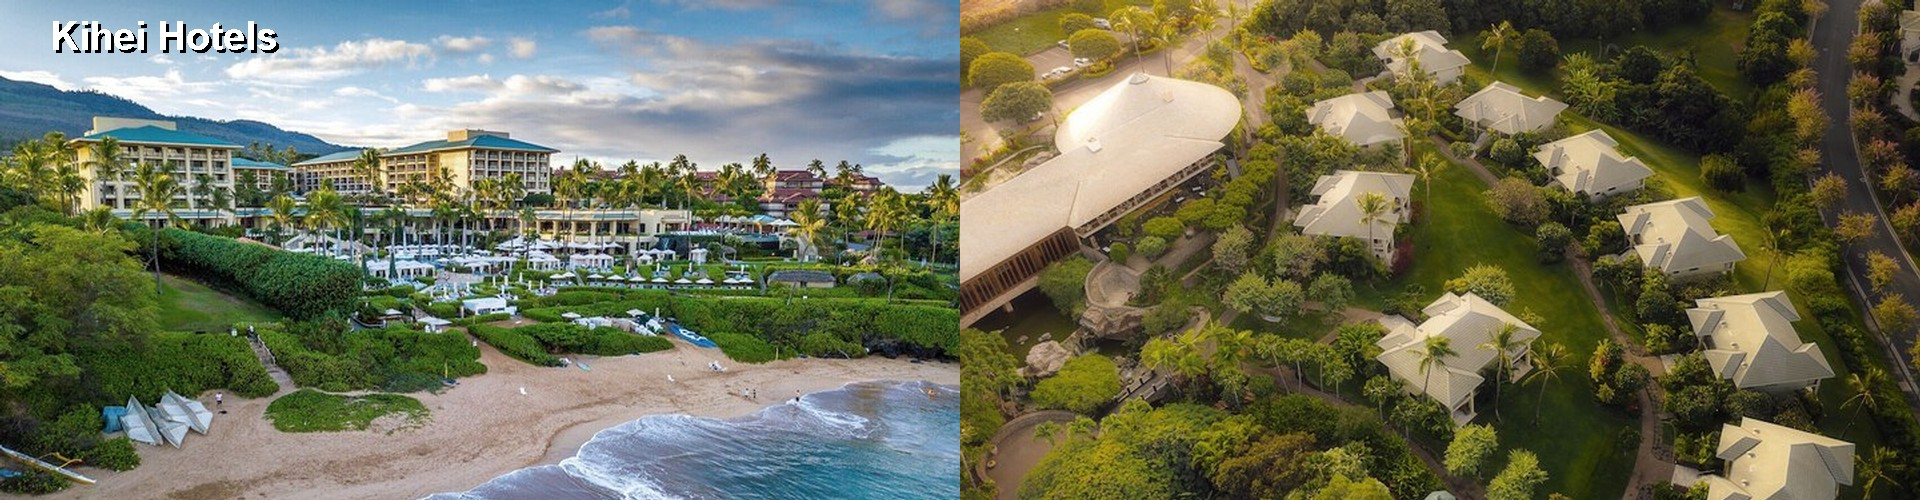 5 Best Hotels near Kihei